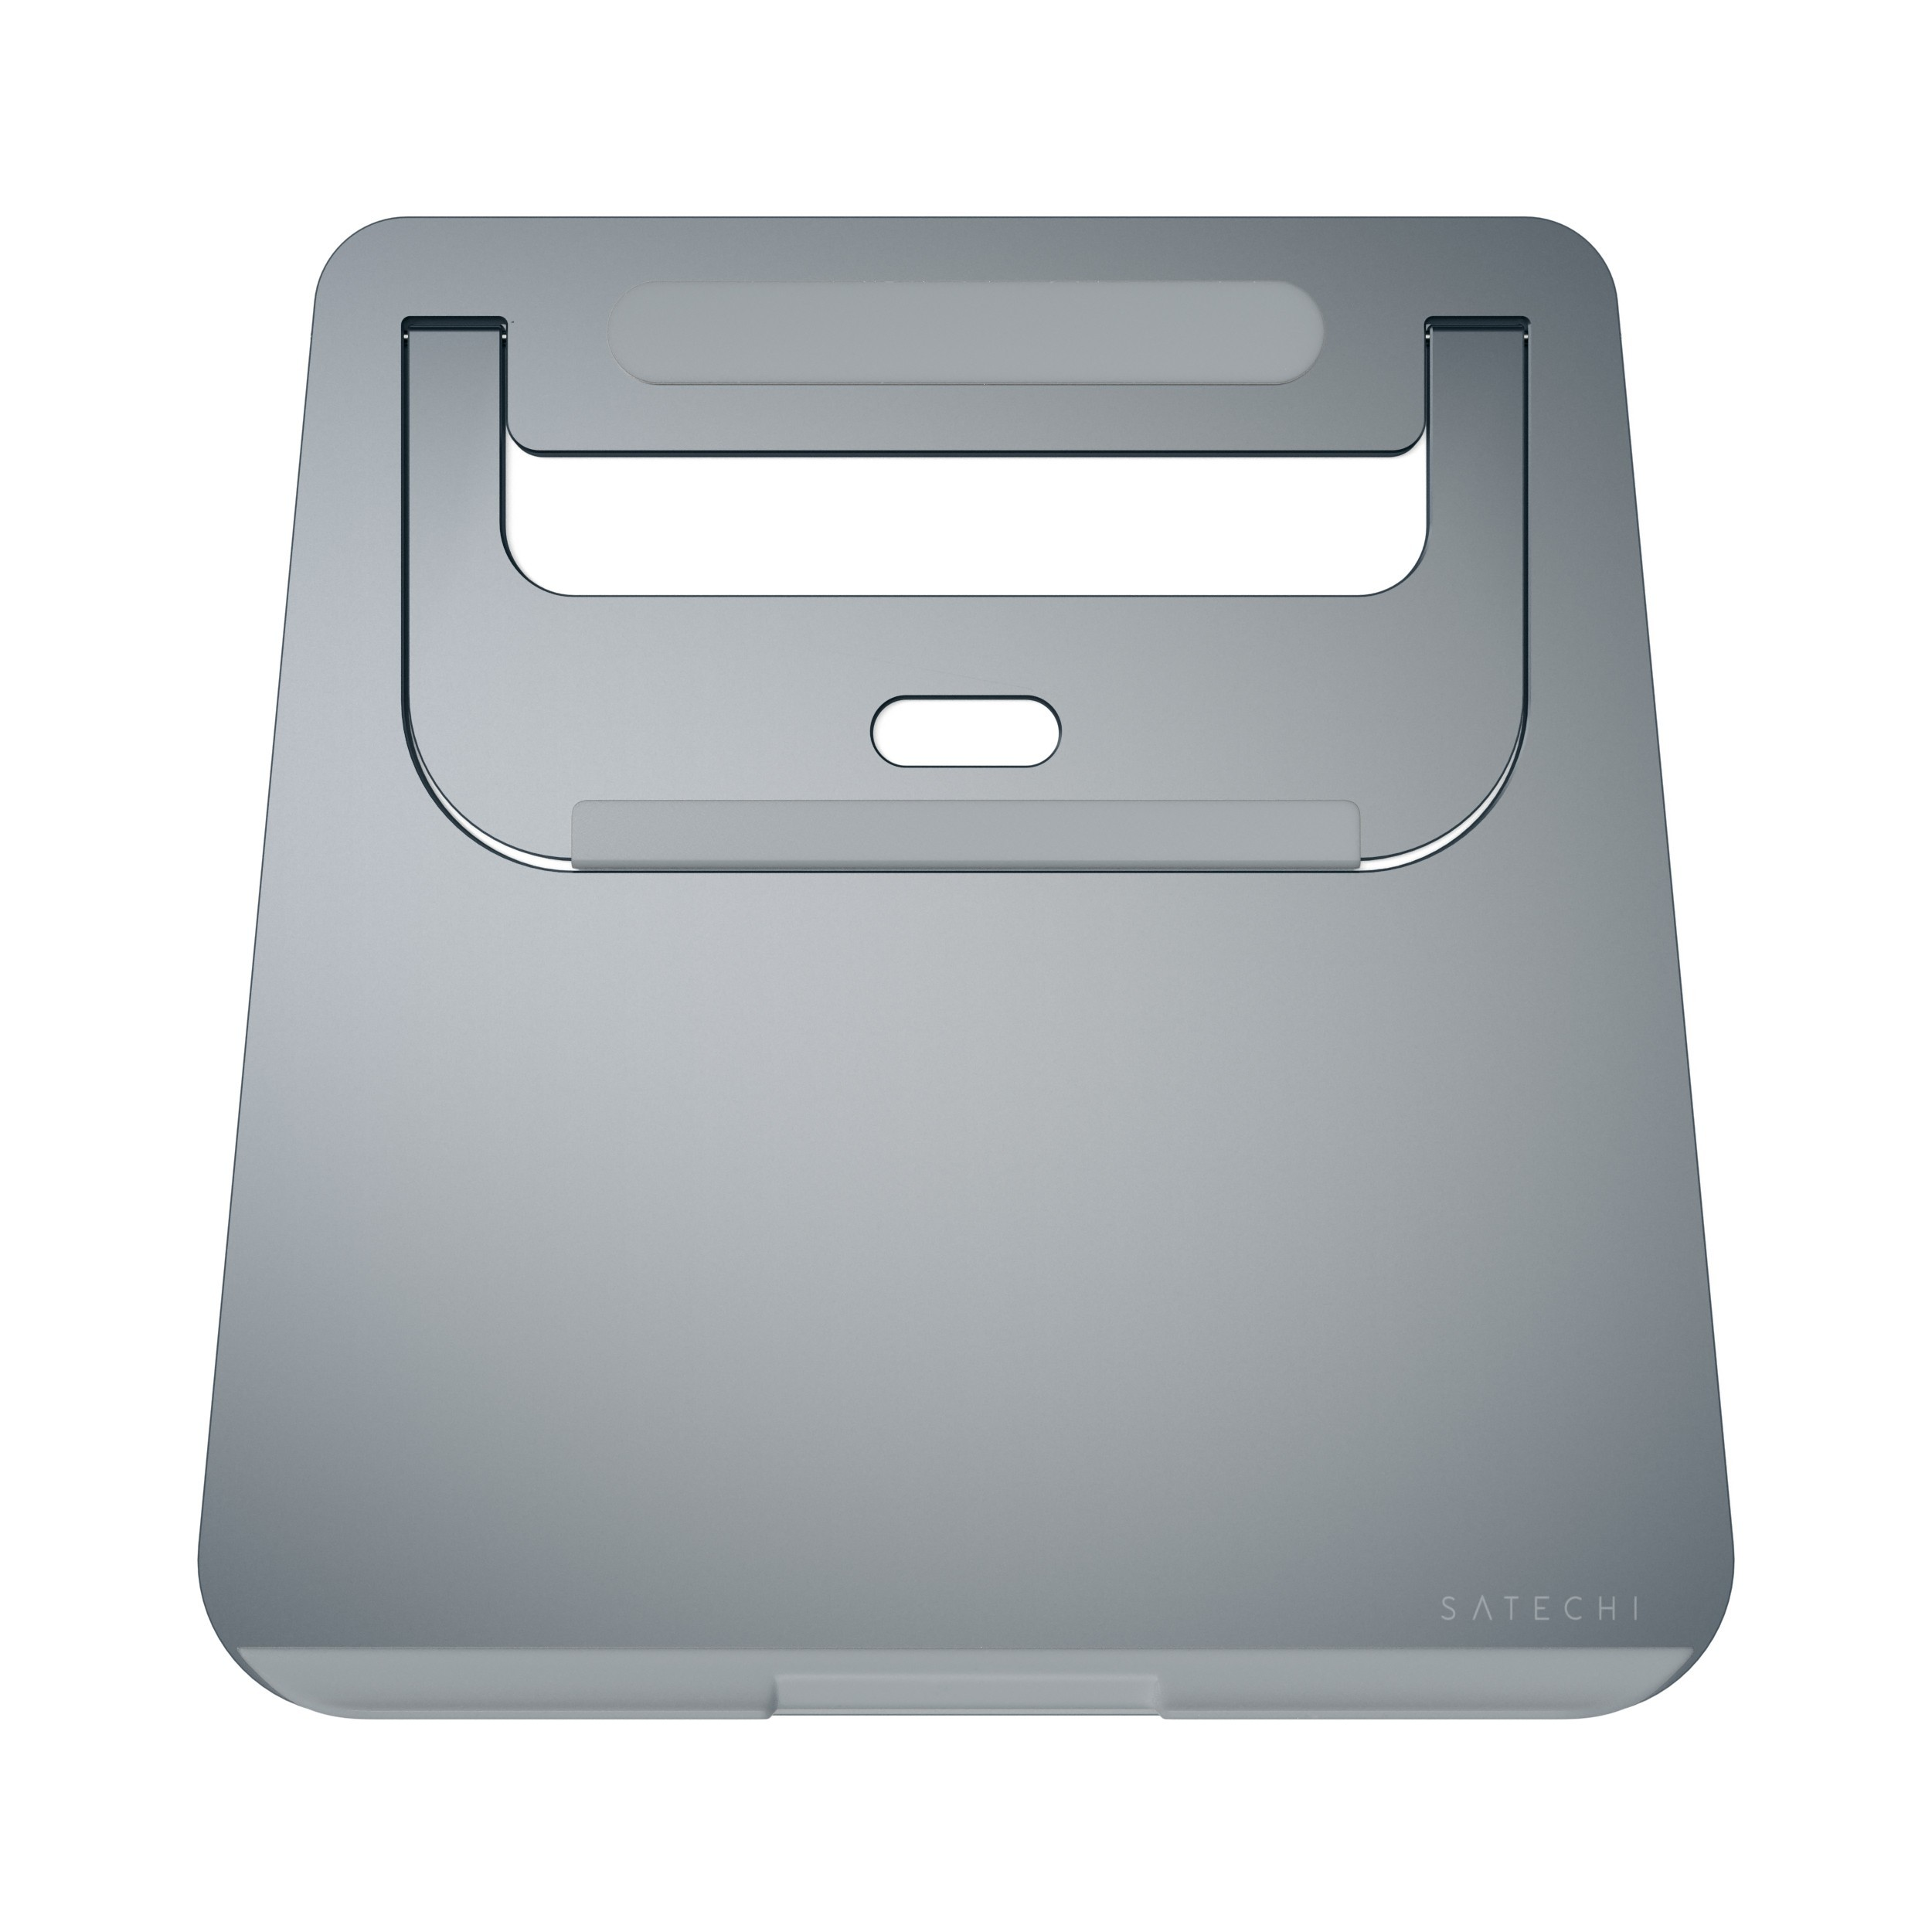 Satechi Lightweight Aluminum Portable Laptop Stand for Laptops, Notebooks, and Tablets - Space Grey, ST-ALTSM